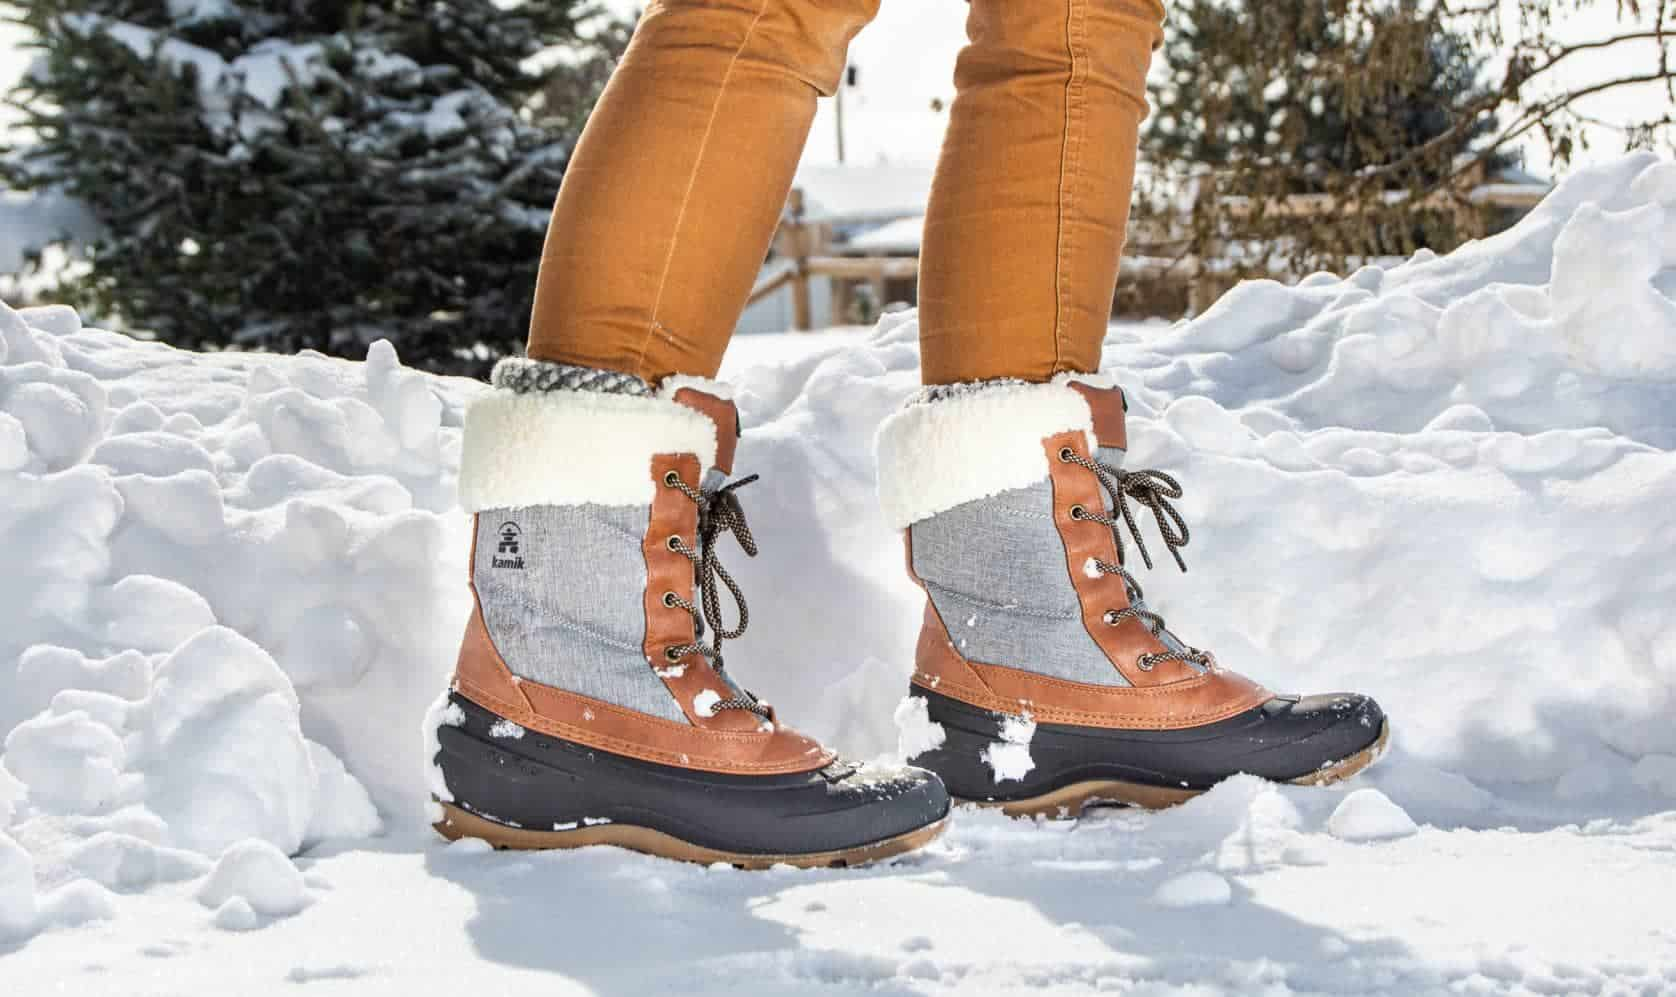 Best-Snow-Boots-For-Walking-on-Ice